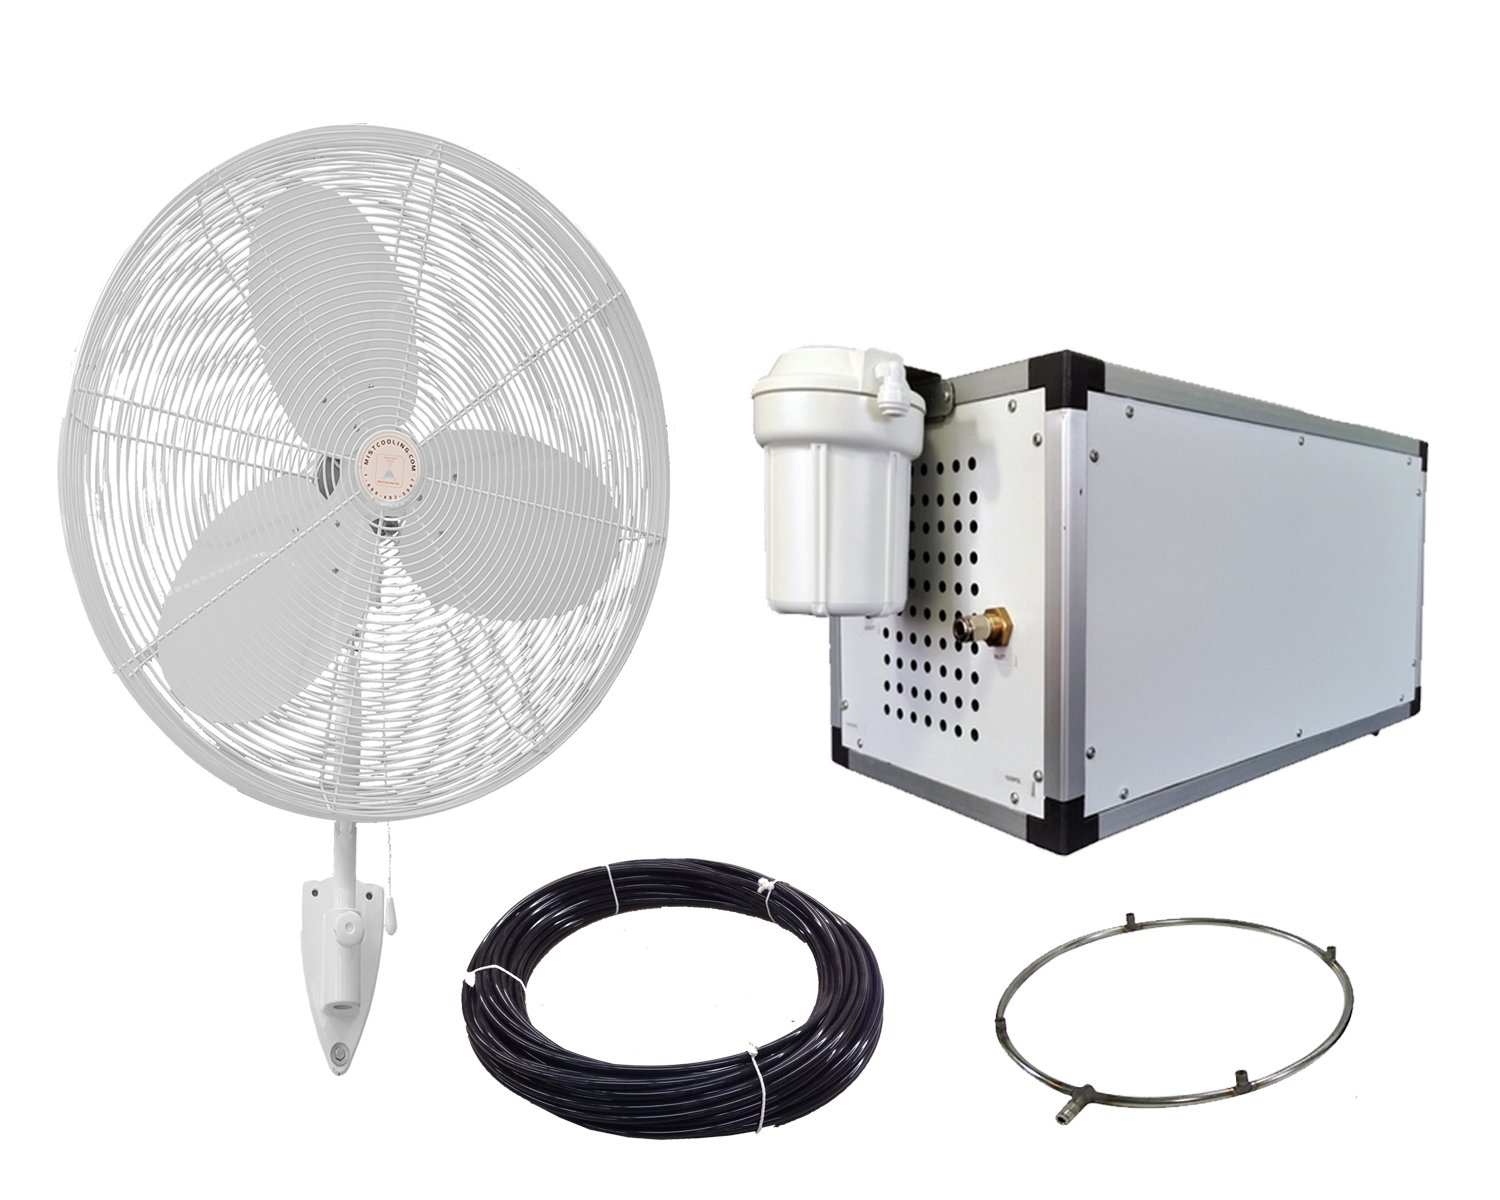 24'' OSC Misting Fan Kit - High Pressure 1500 PSI Misting Pump - Stainless Steel Misting Ring - For Warehouse Cooling, Industrial Misting, Restaurant Cooling (8 Fans White Color-Requires Larger Pump)